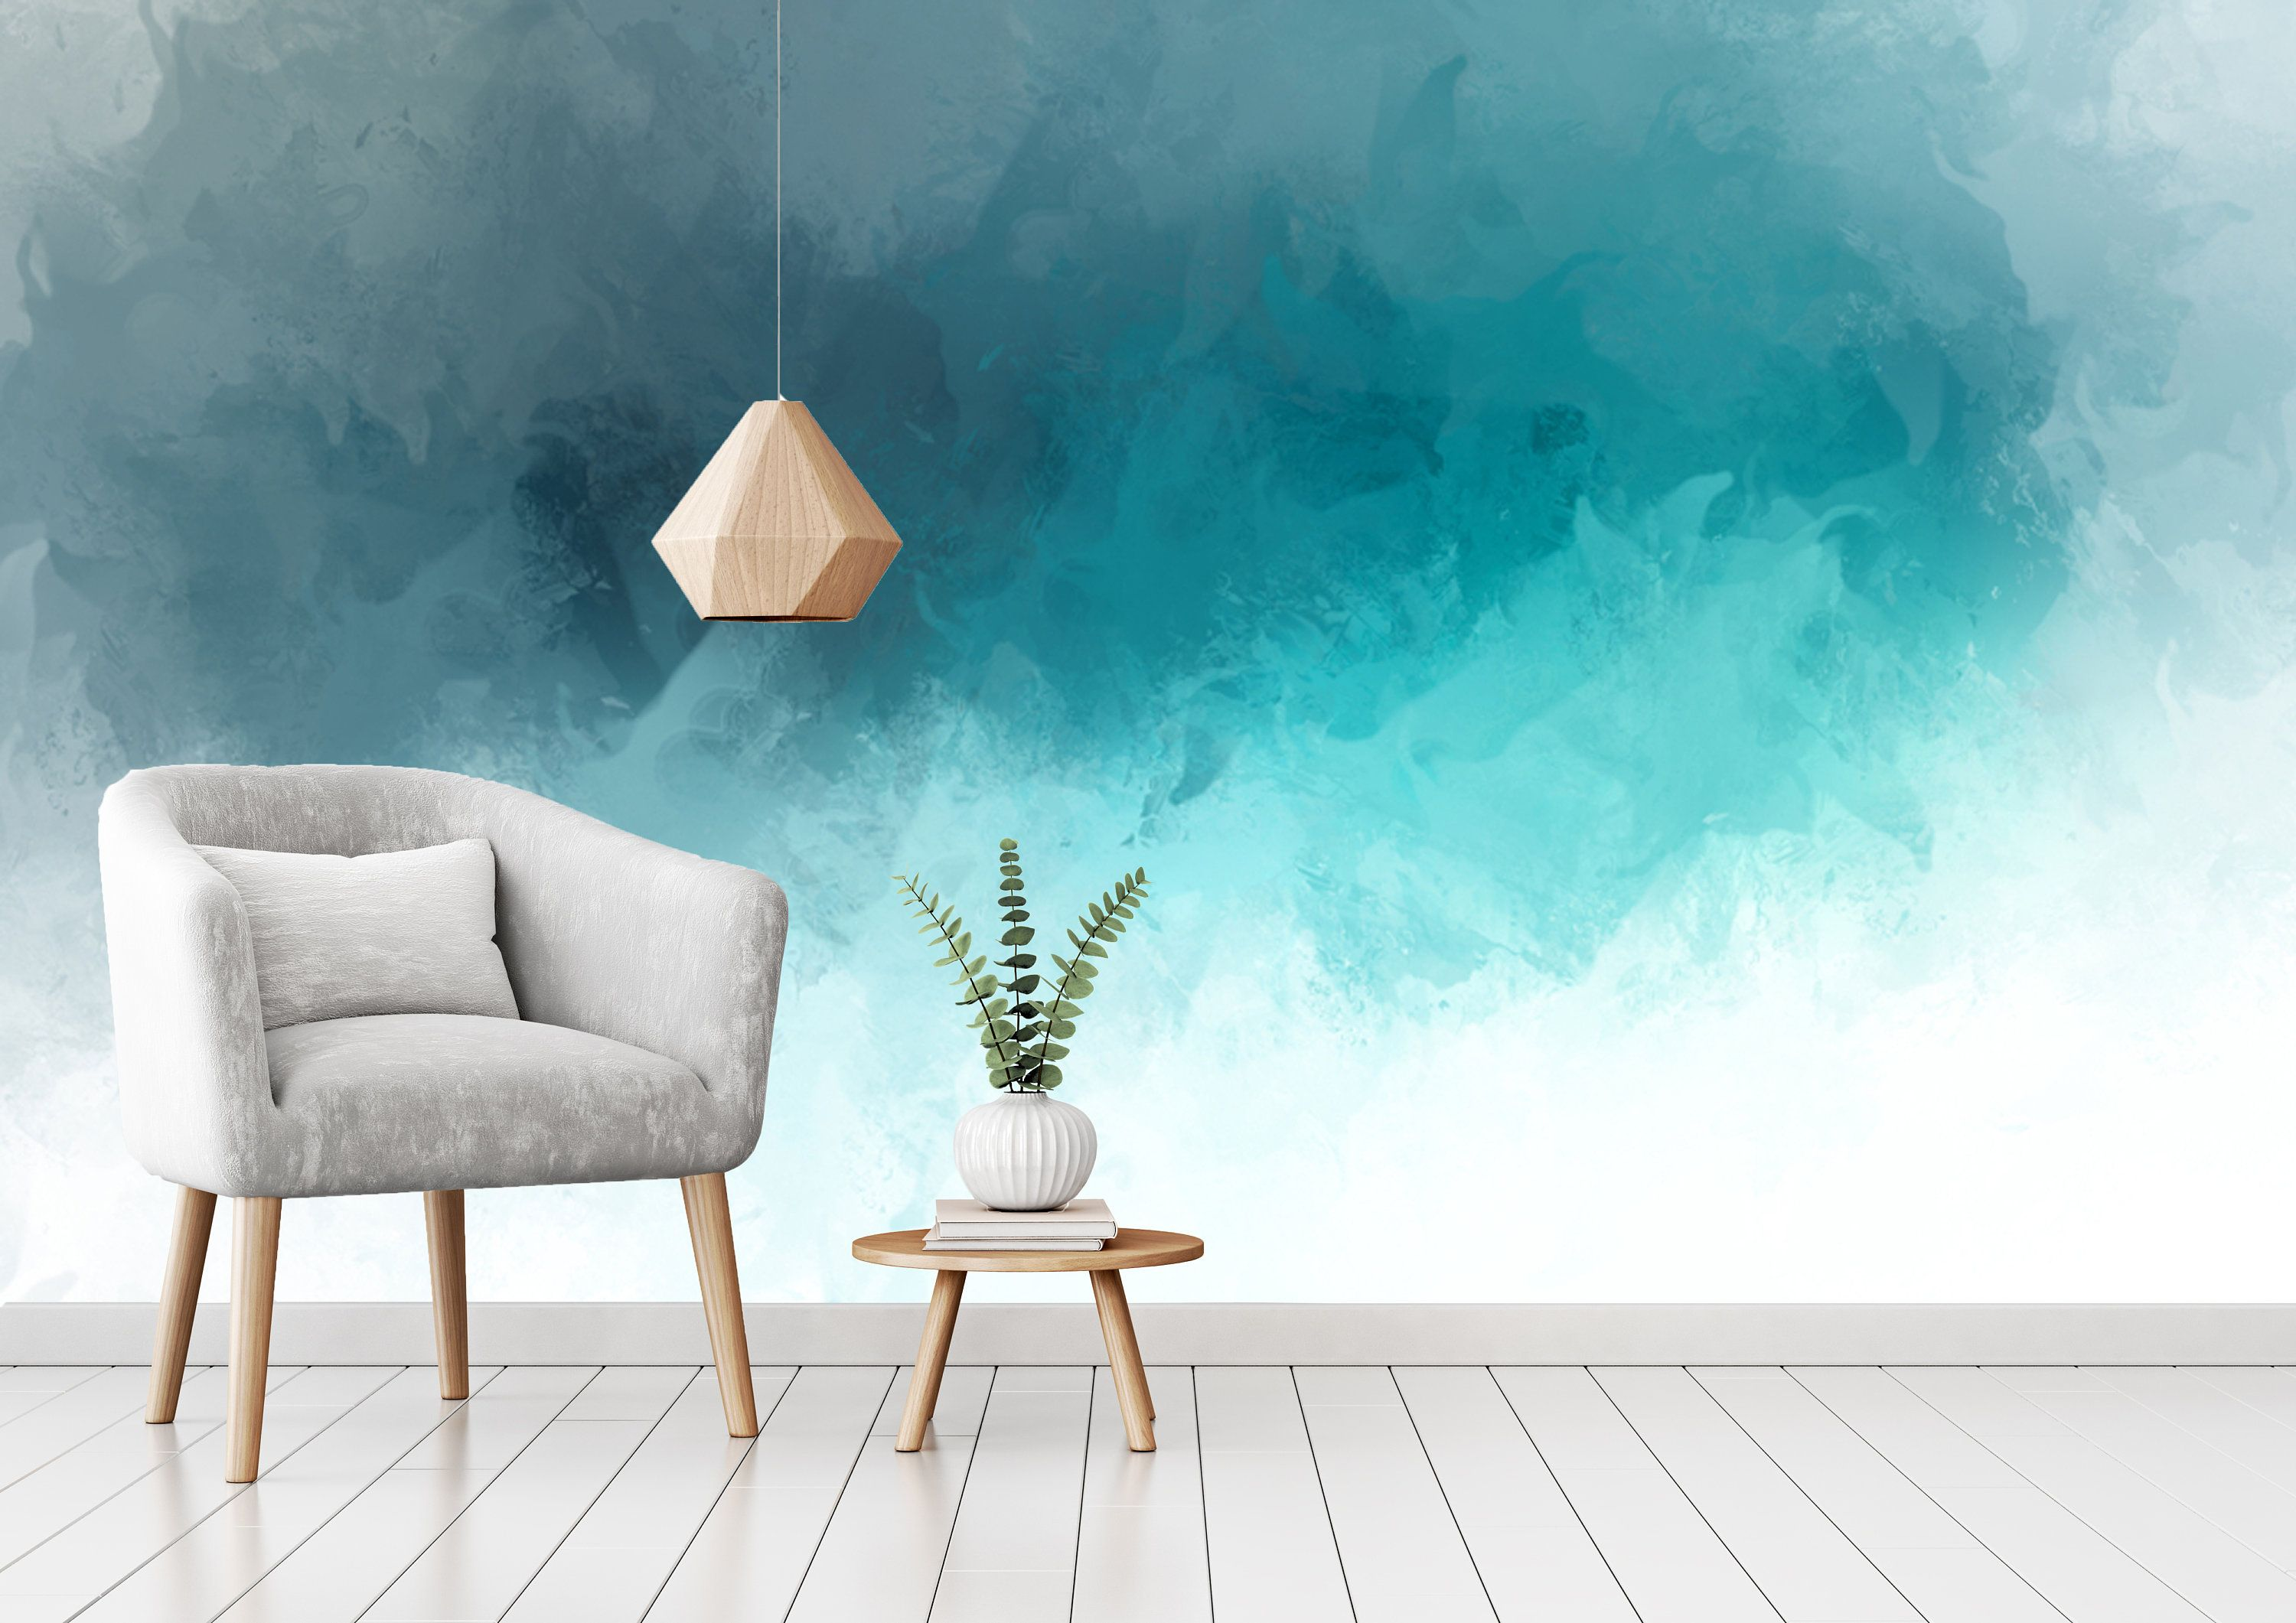 Atmospheric Blue Wave Abstract Wallpaper Self Adhesive